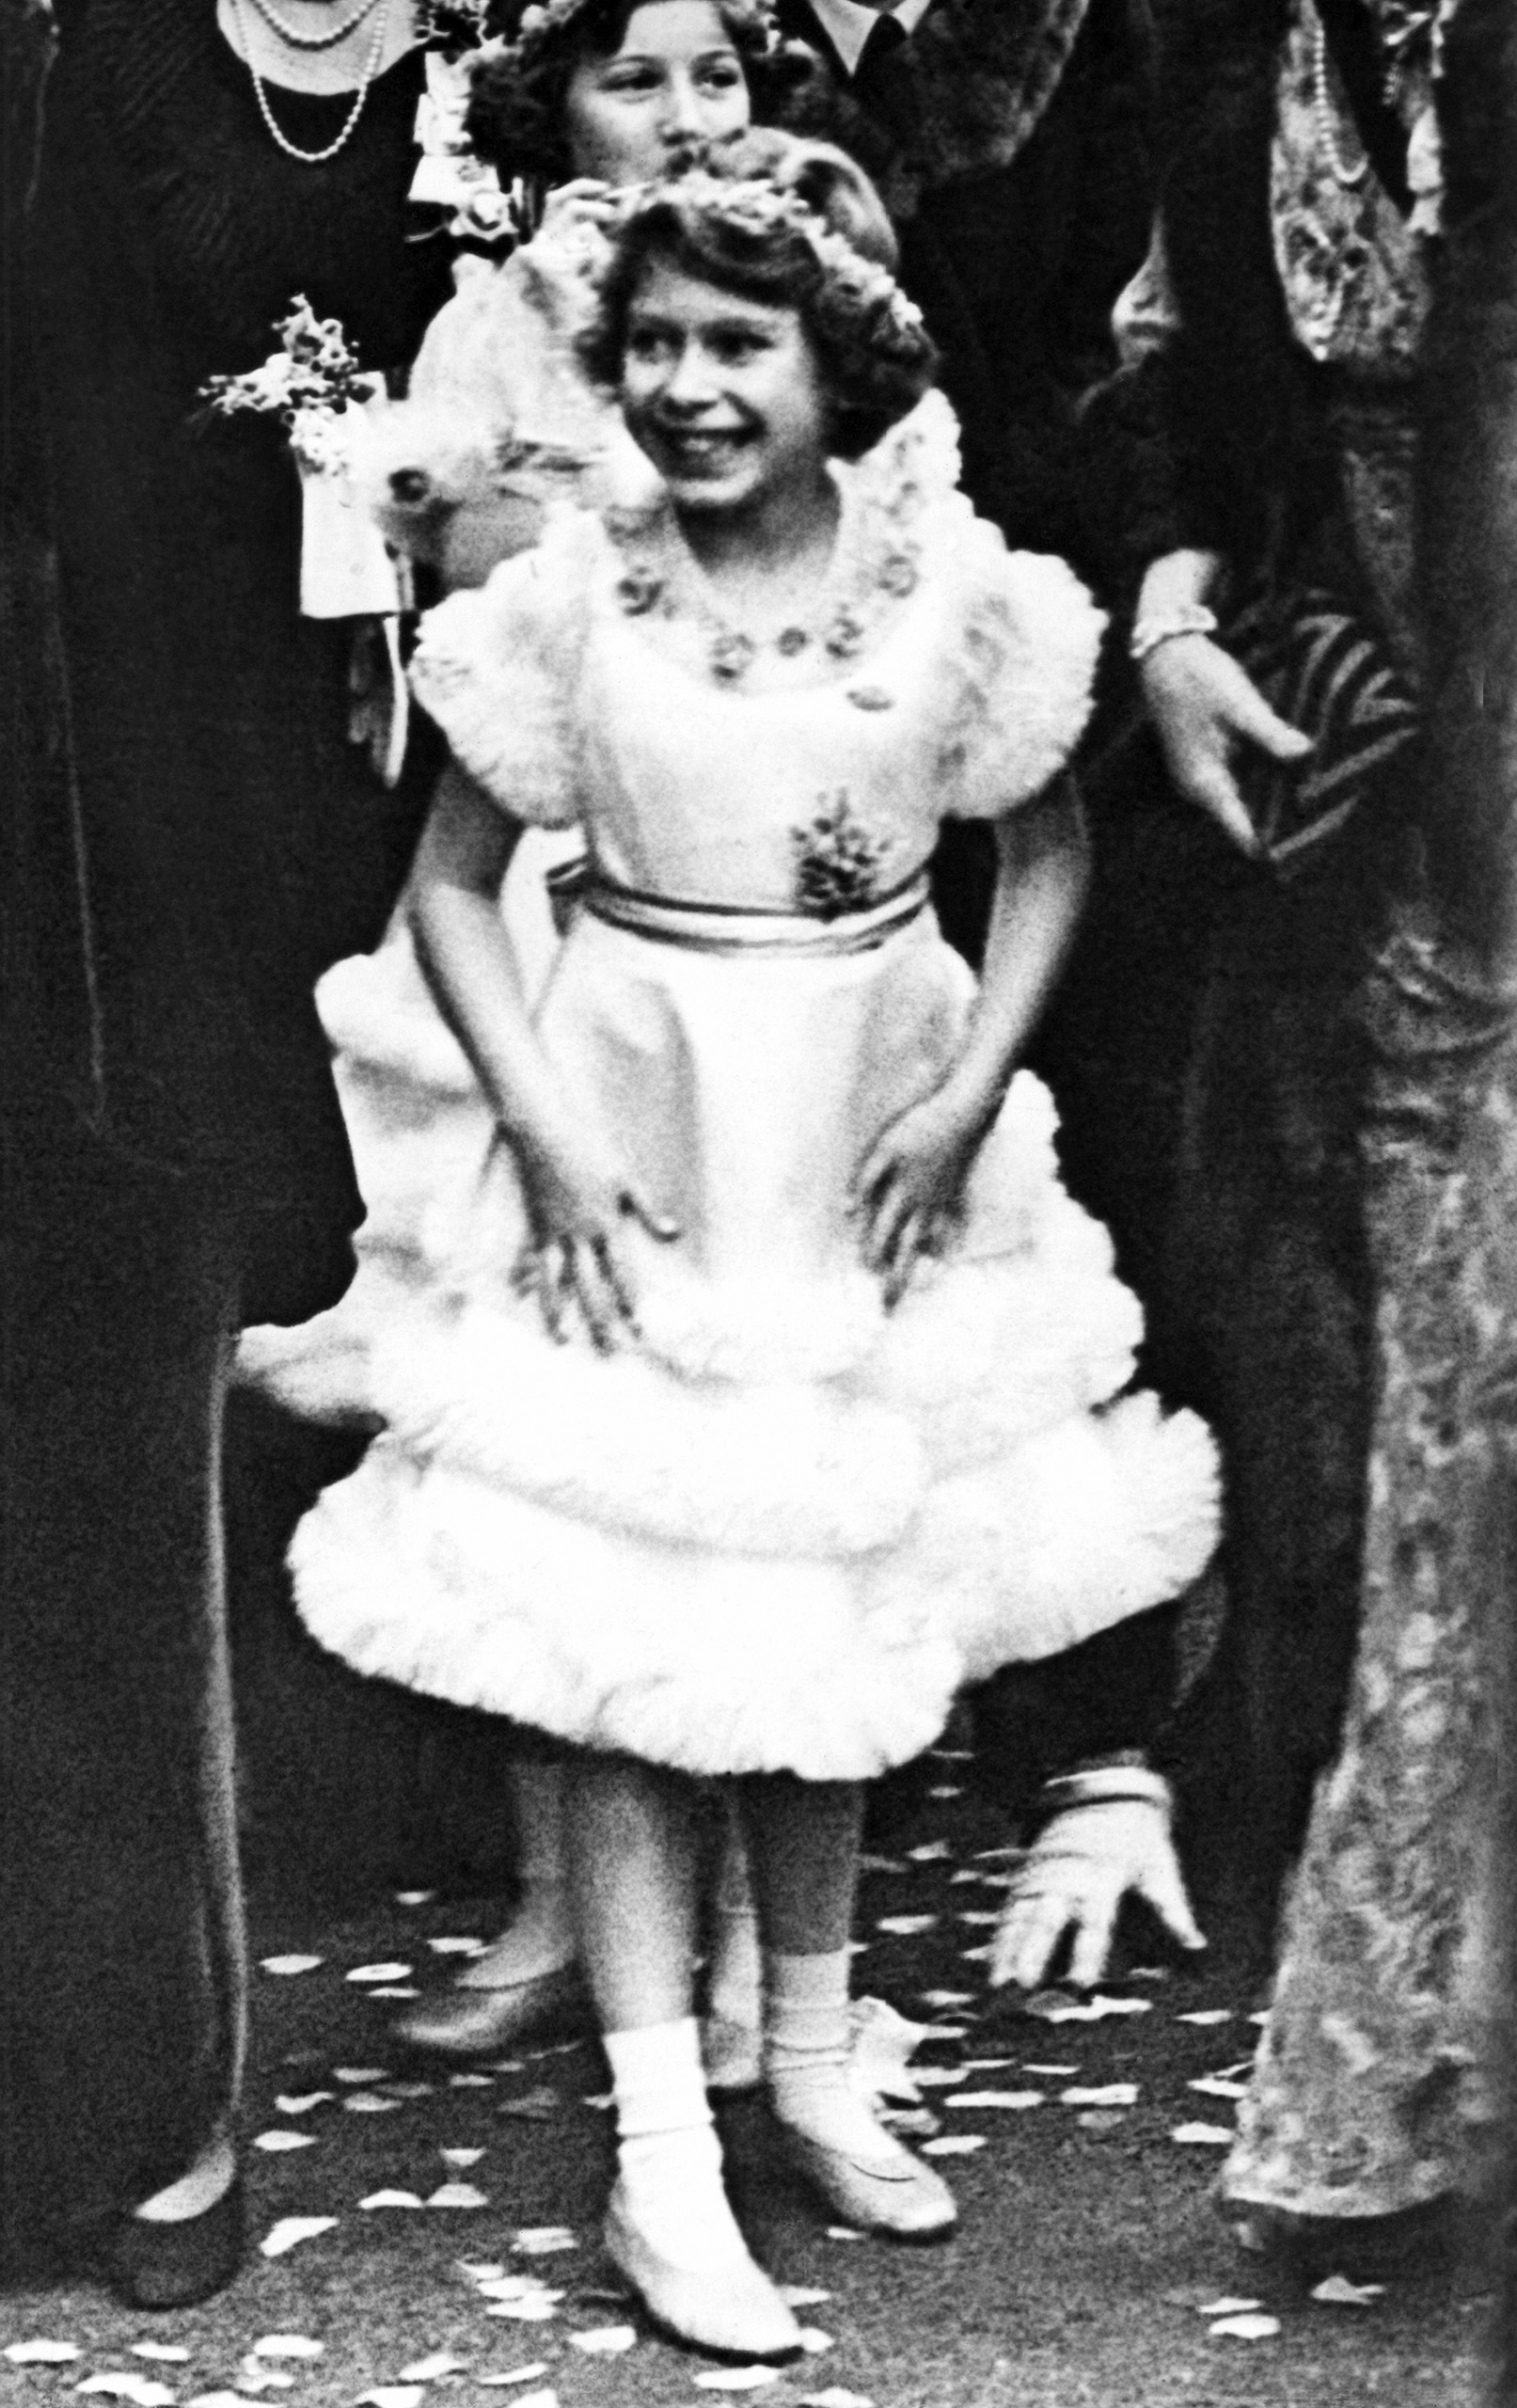 Princess Elizabeth, age 9, after the wedding of the Duke of Gloucester and Lady Alice Scott on Nov. 6, 1935.